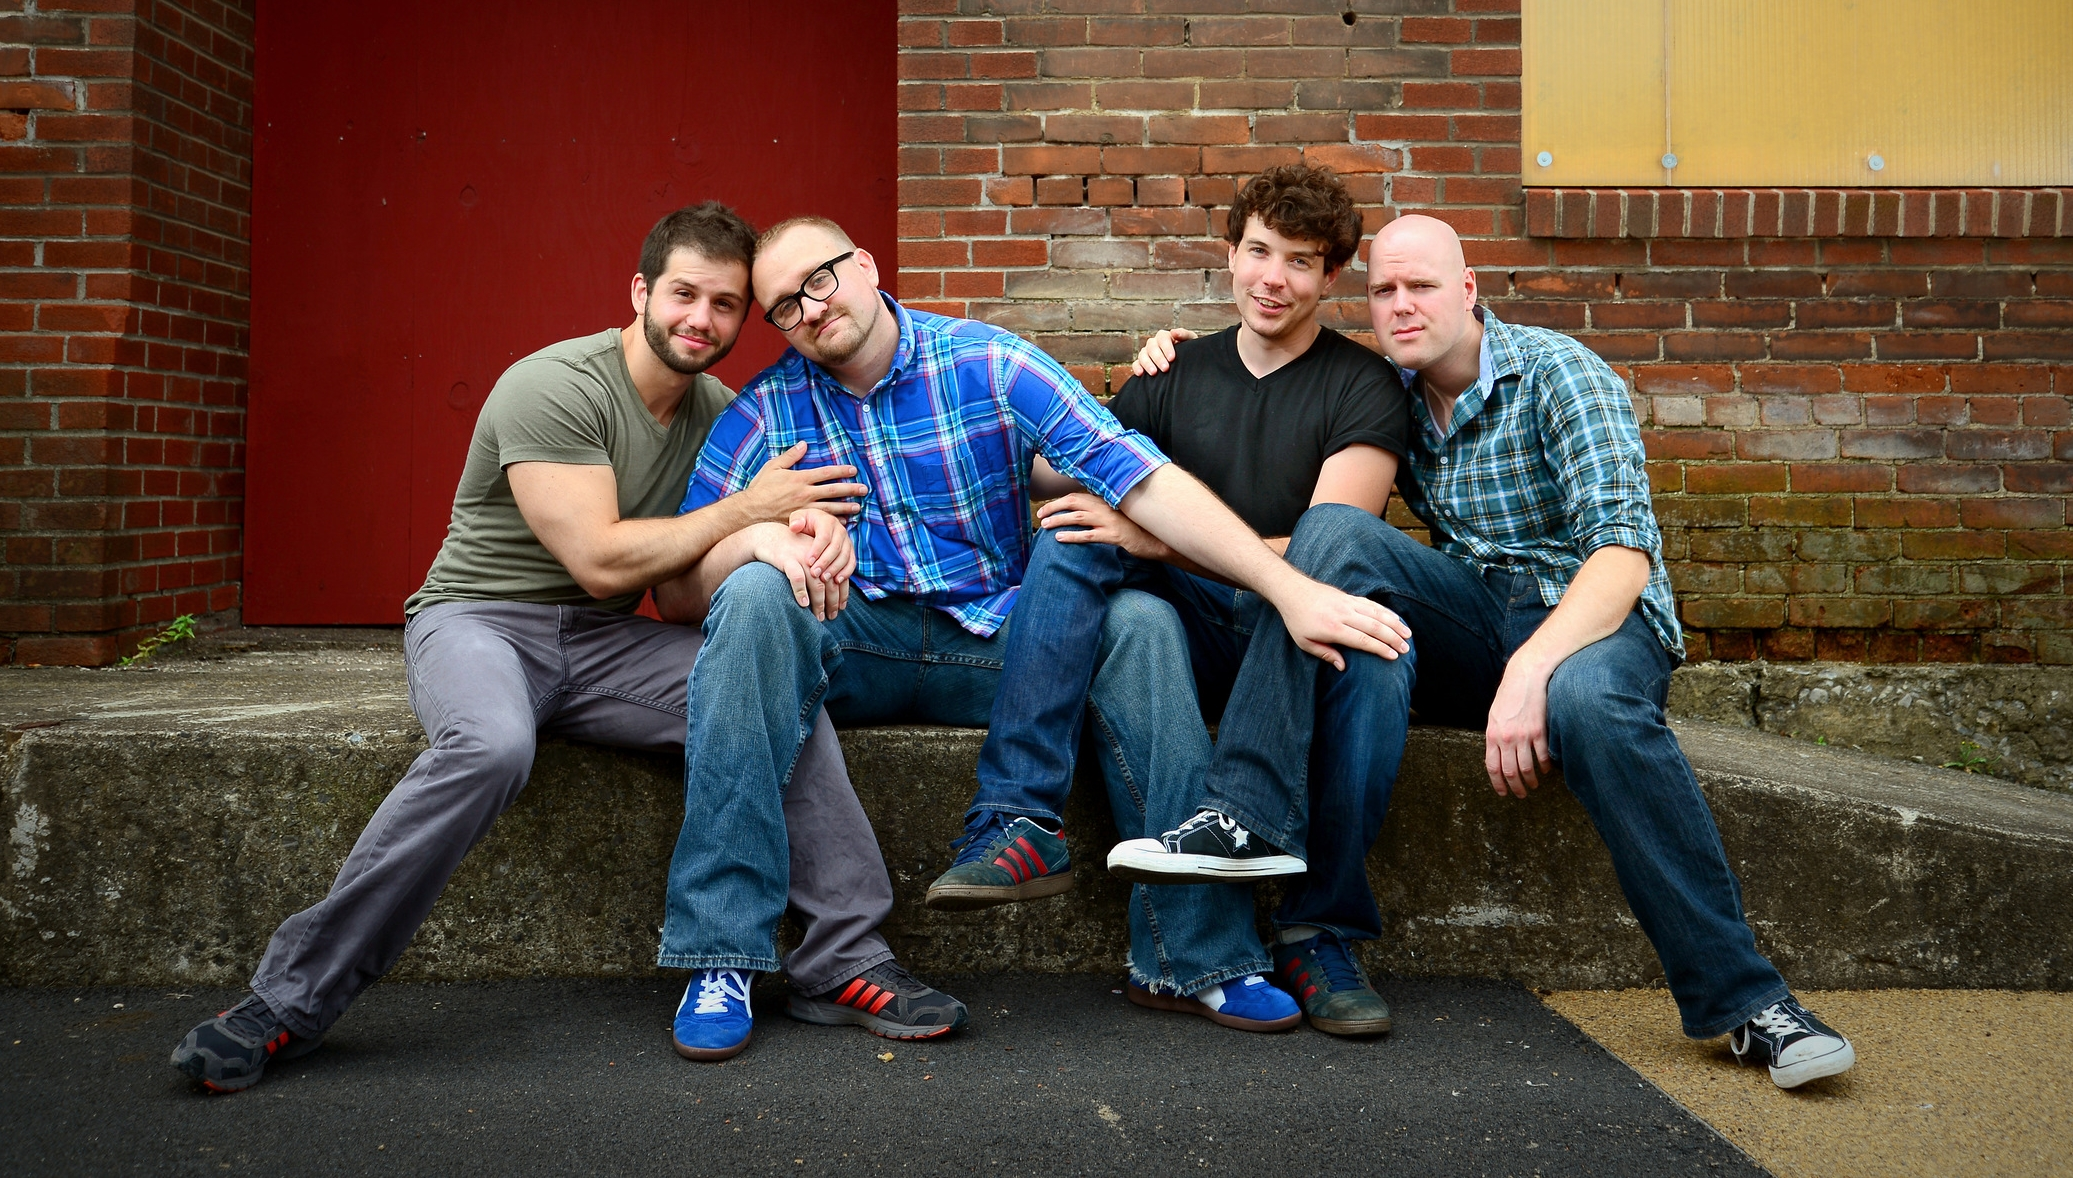 Improv comedy troupe ManDudeBro performs Friday, July 24, in the ArtsQuest Center at SteelStacks in Bethlehem.  (Bill Stank Photo)